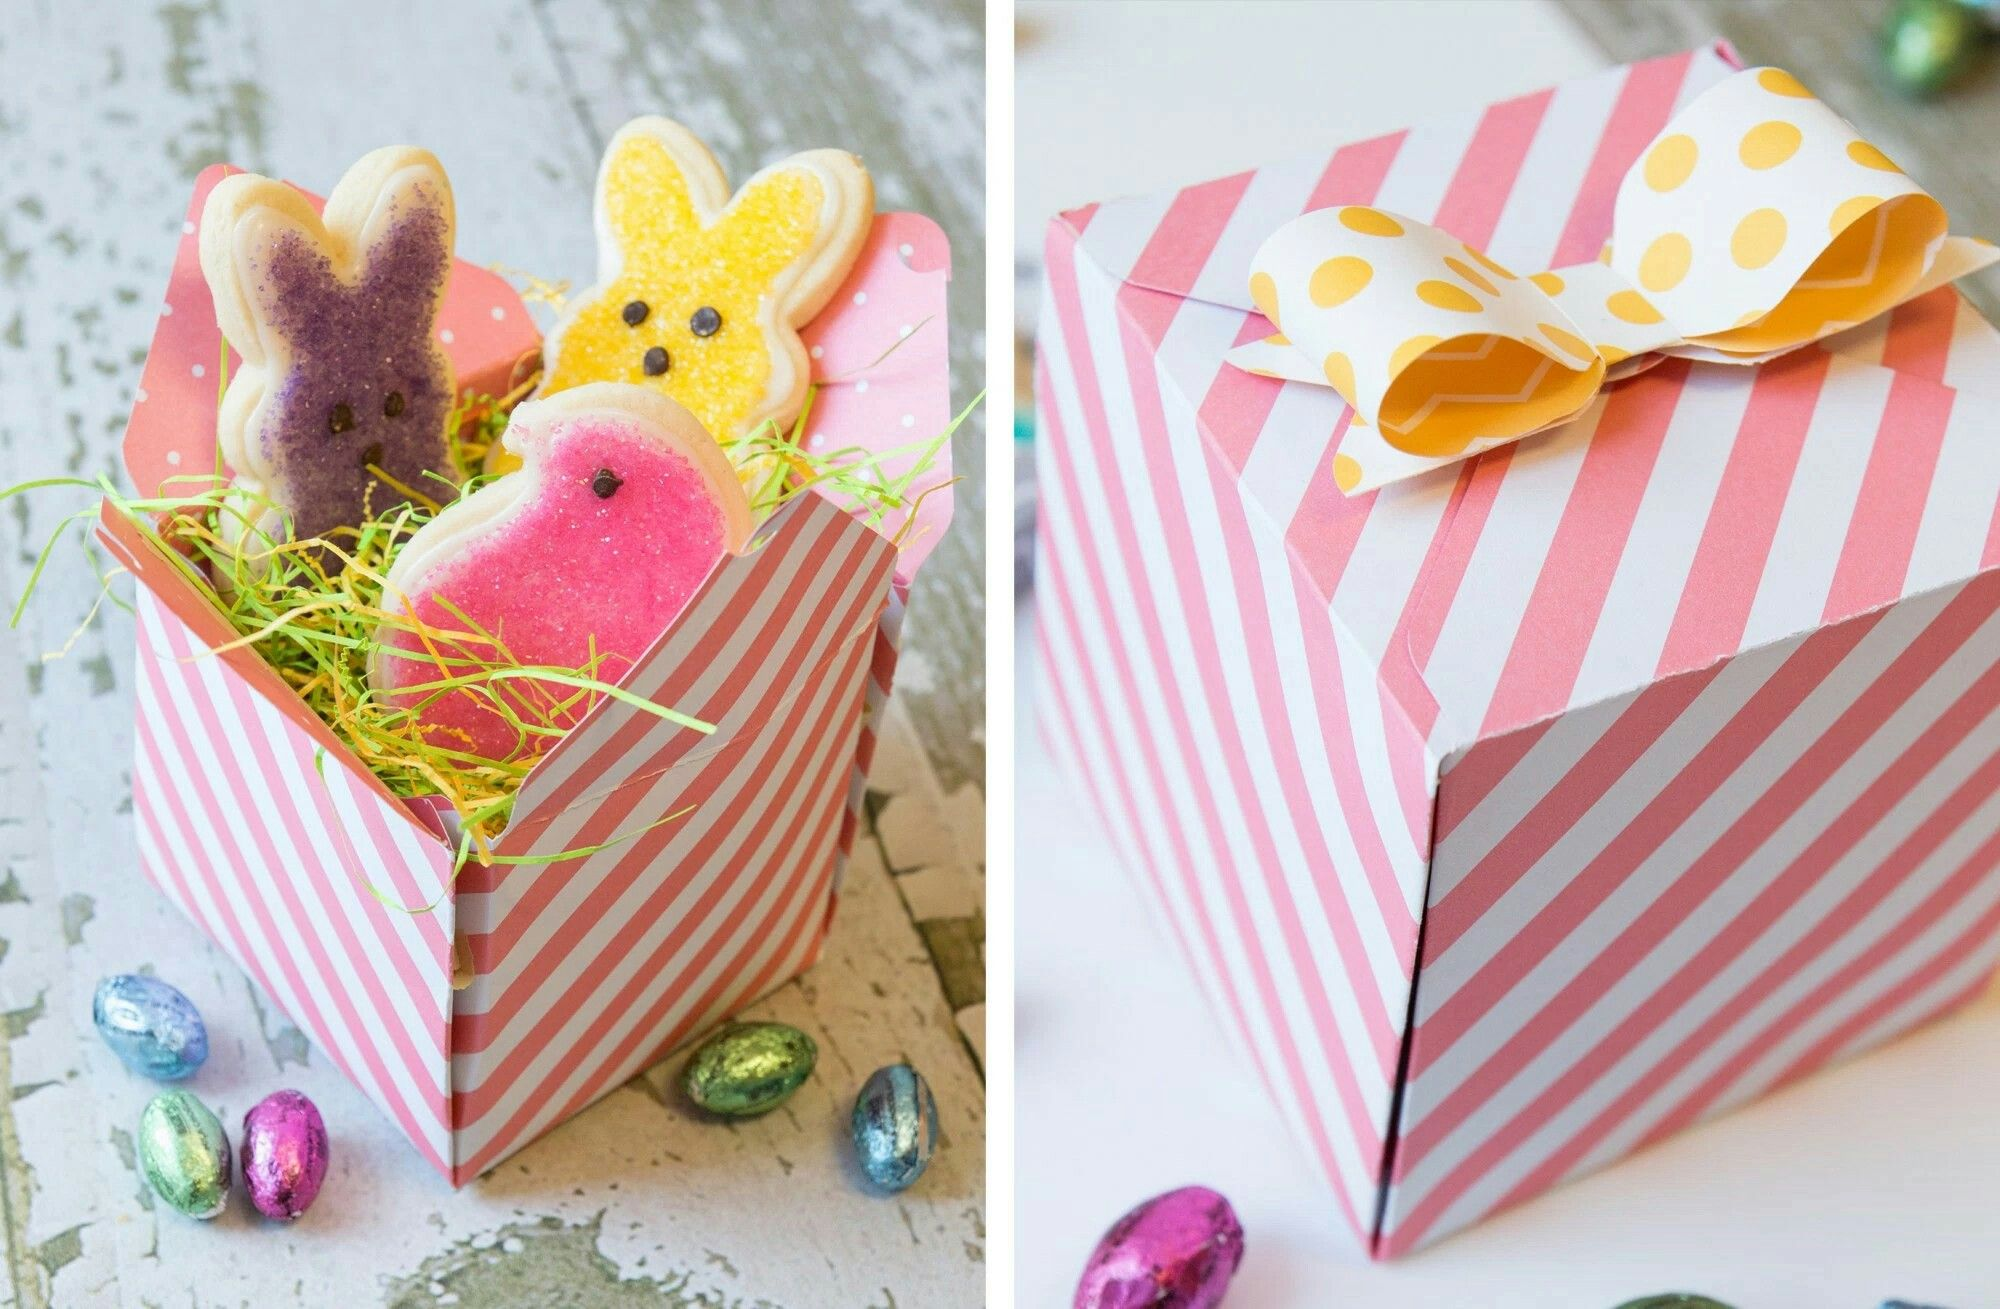 Pin by decadent minis on diy projects to try pinterest explore easter gift easter crafts and more negle Image collections